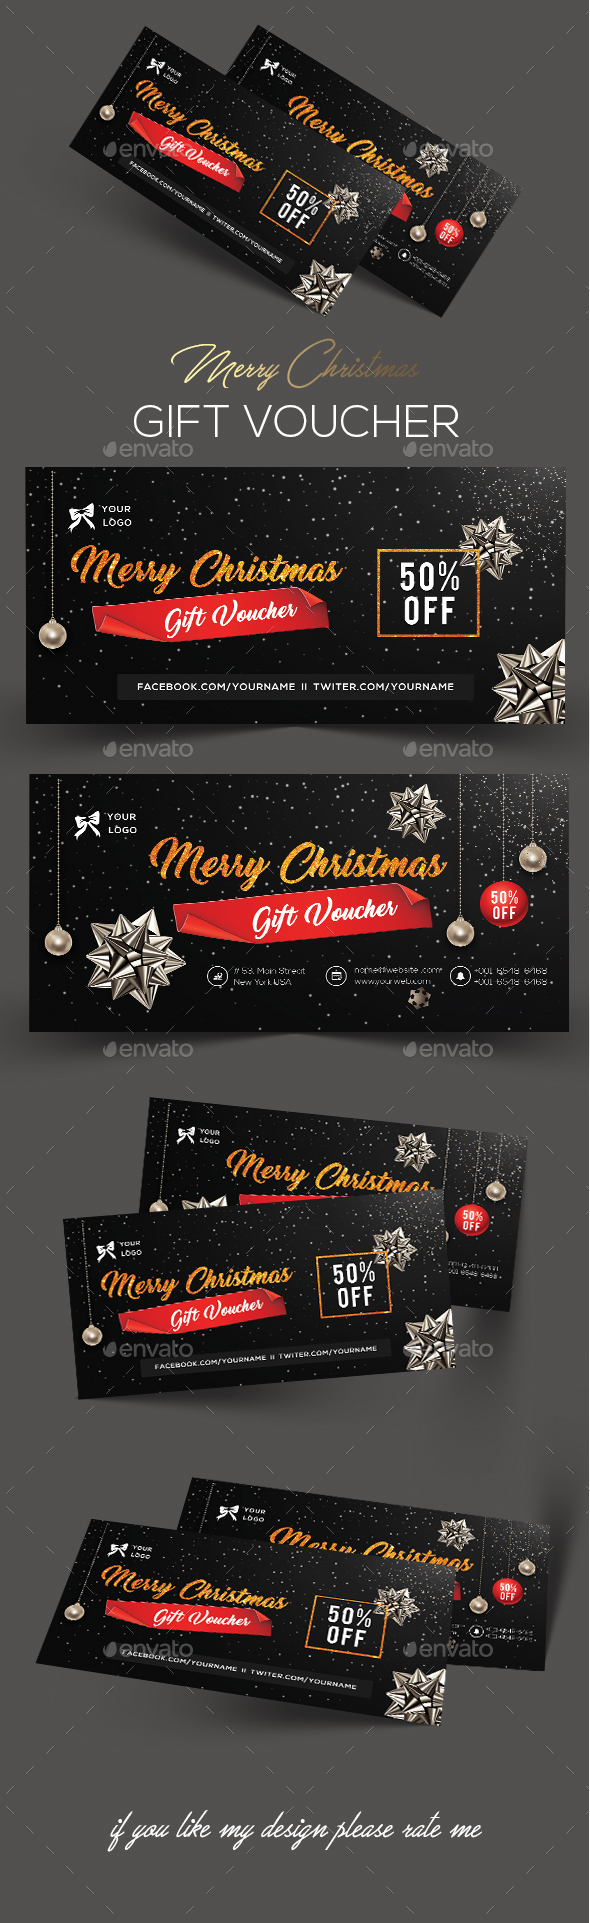 GraphicRiver Christmas Gift Voucher 21124712